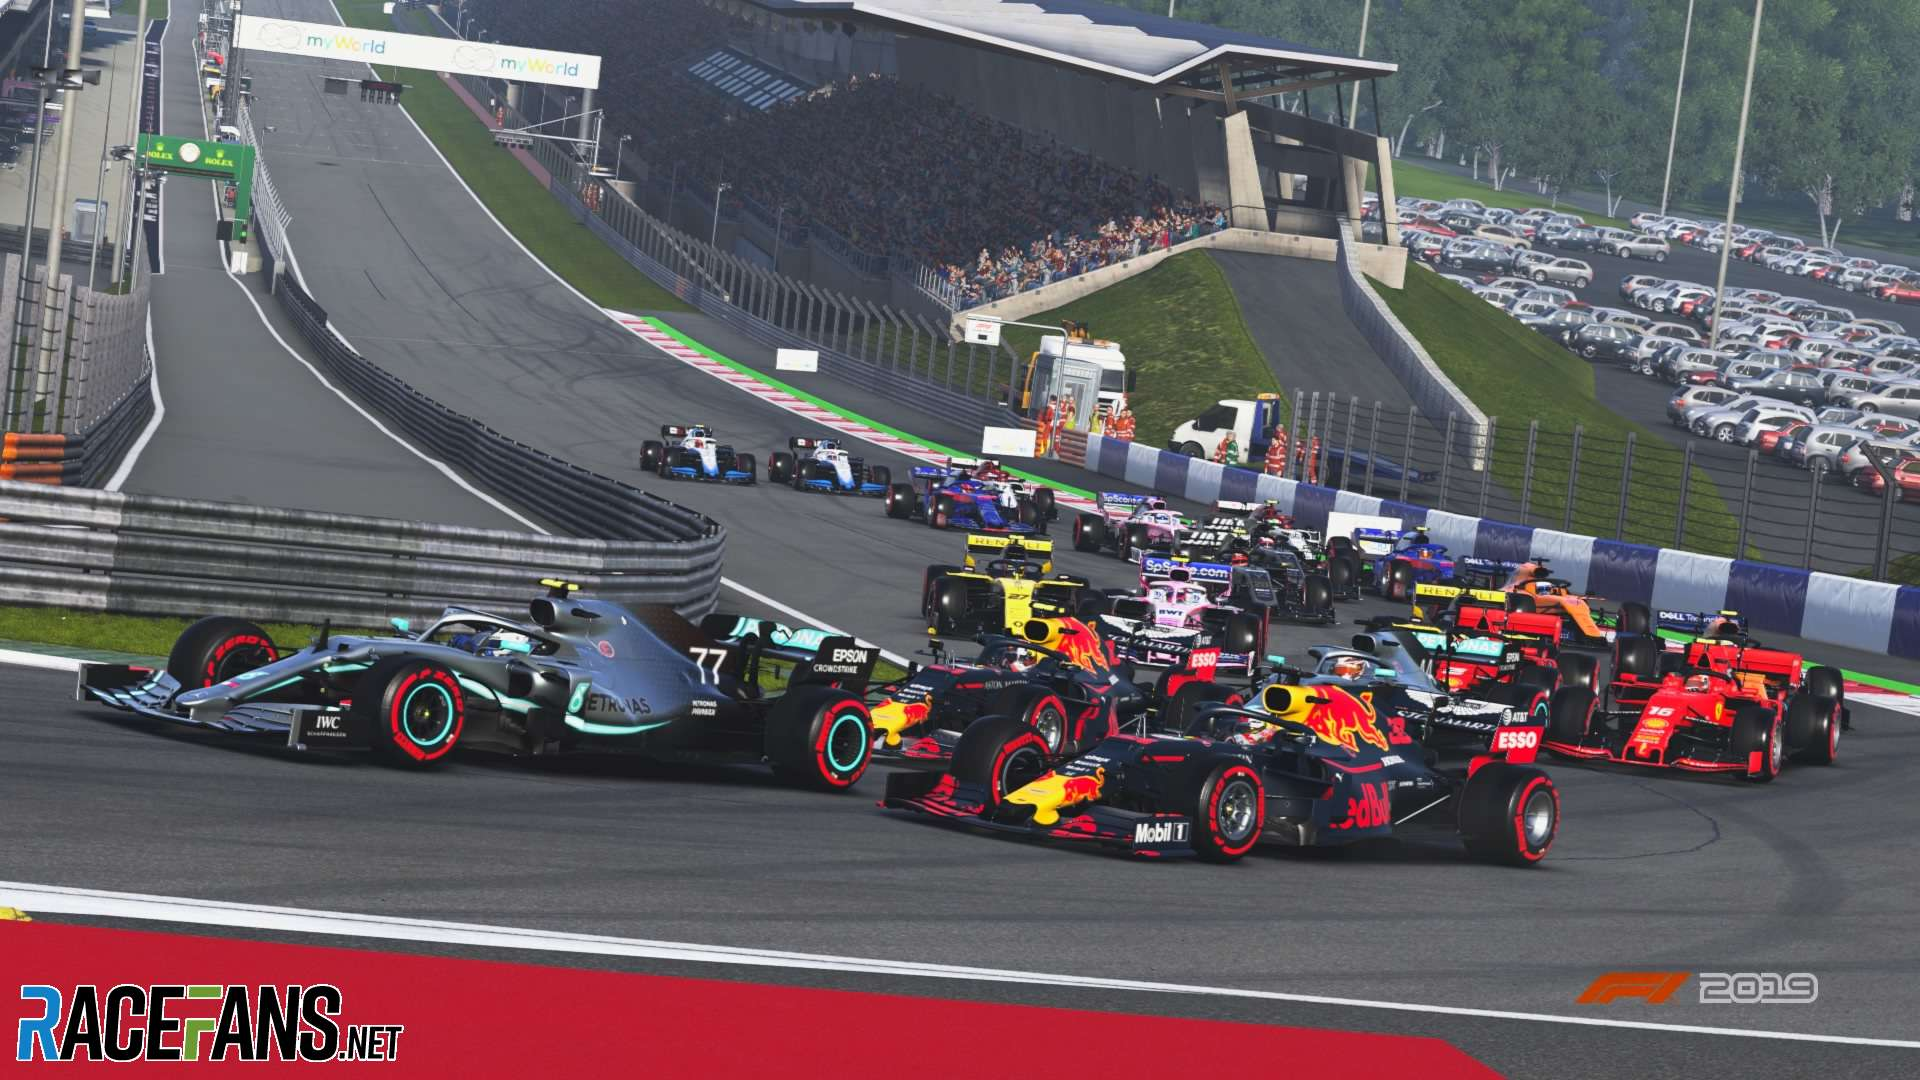 F1 2020 game will feature all 22 tracks despite calendar changes · RaceFans